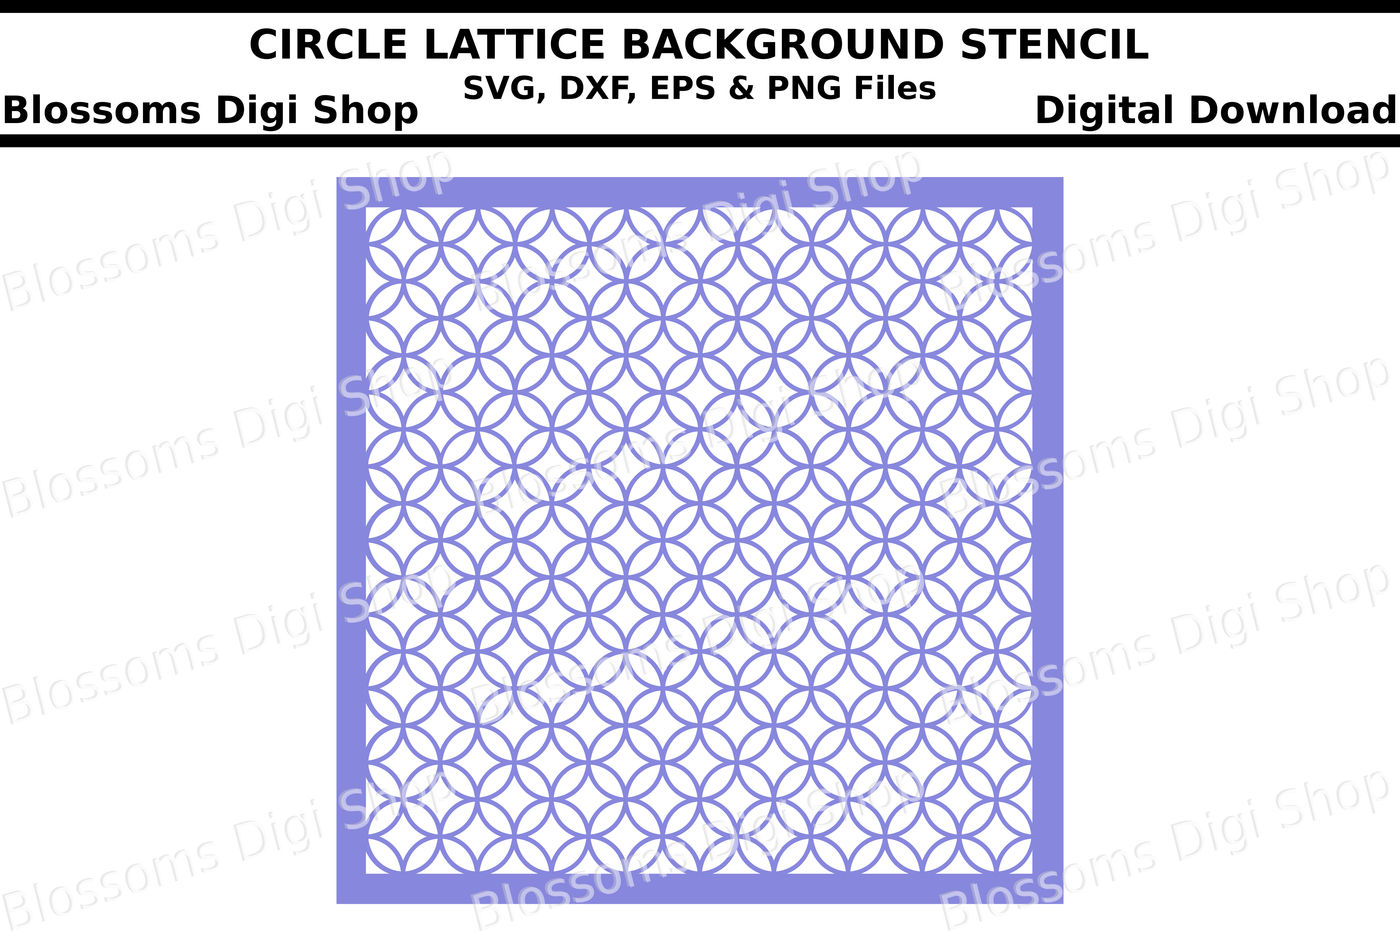 Circle lattice background stencil SVG, DXF, EPS and PNF